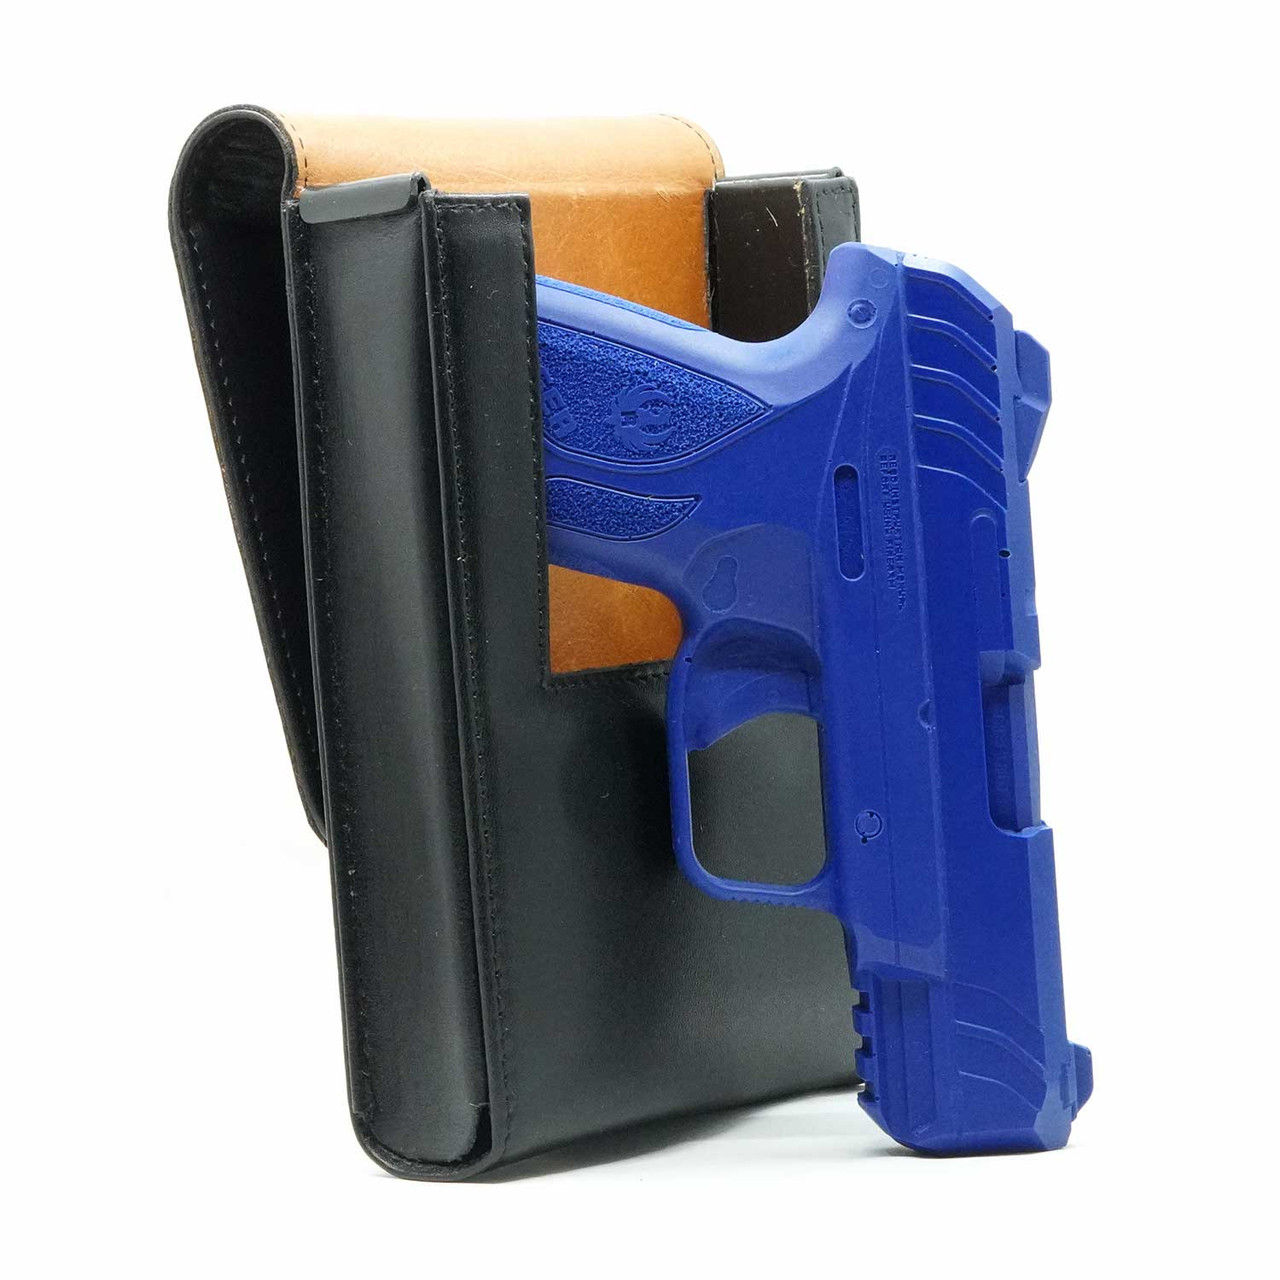 Ruger Security 9 Compact Sneaky Pete Holster (Belt Clip)